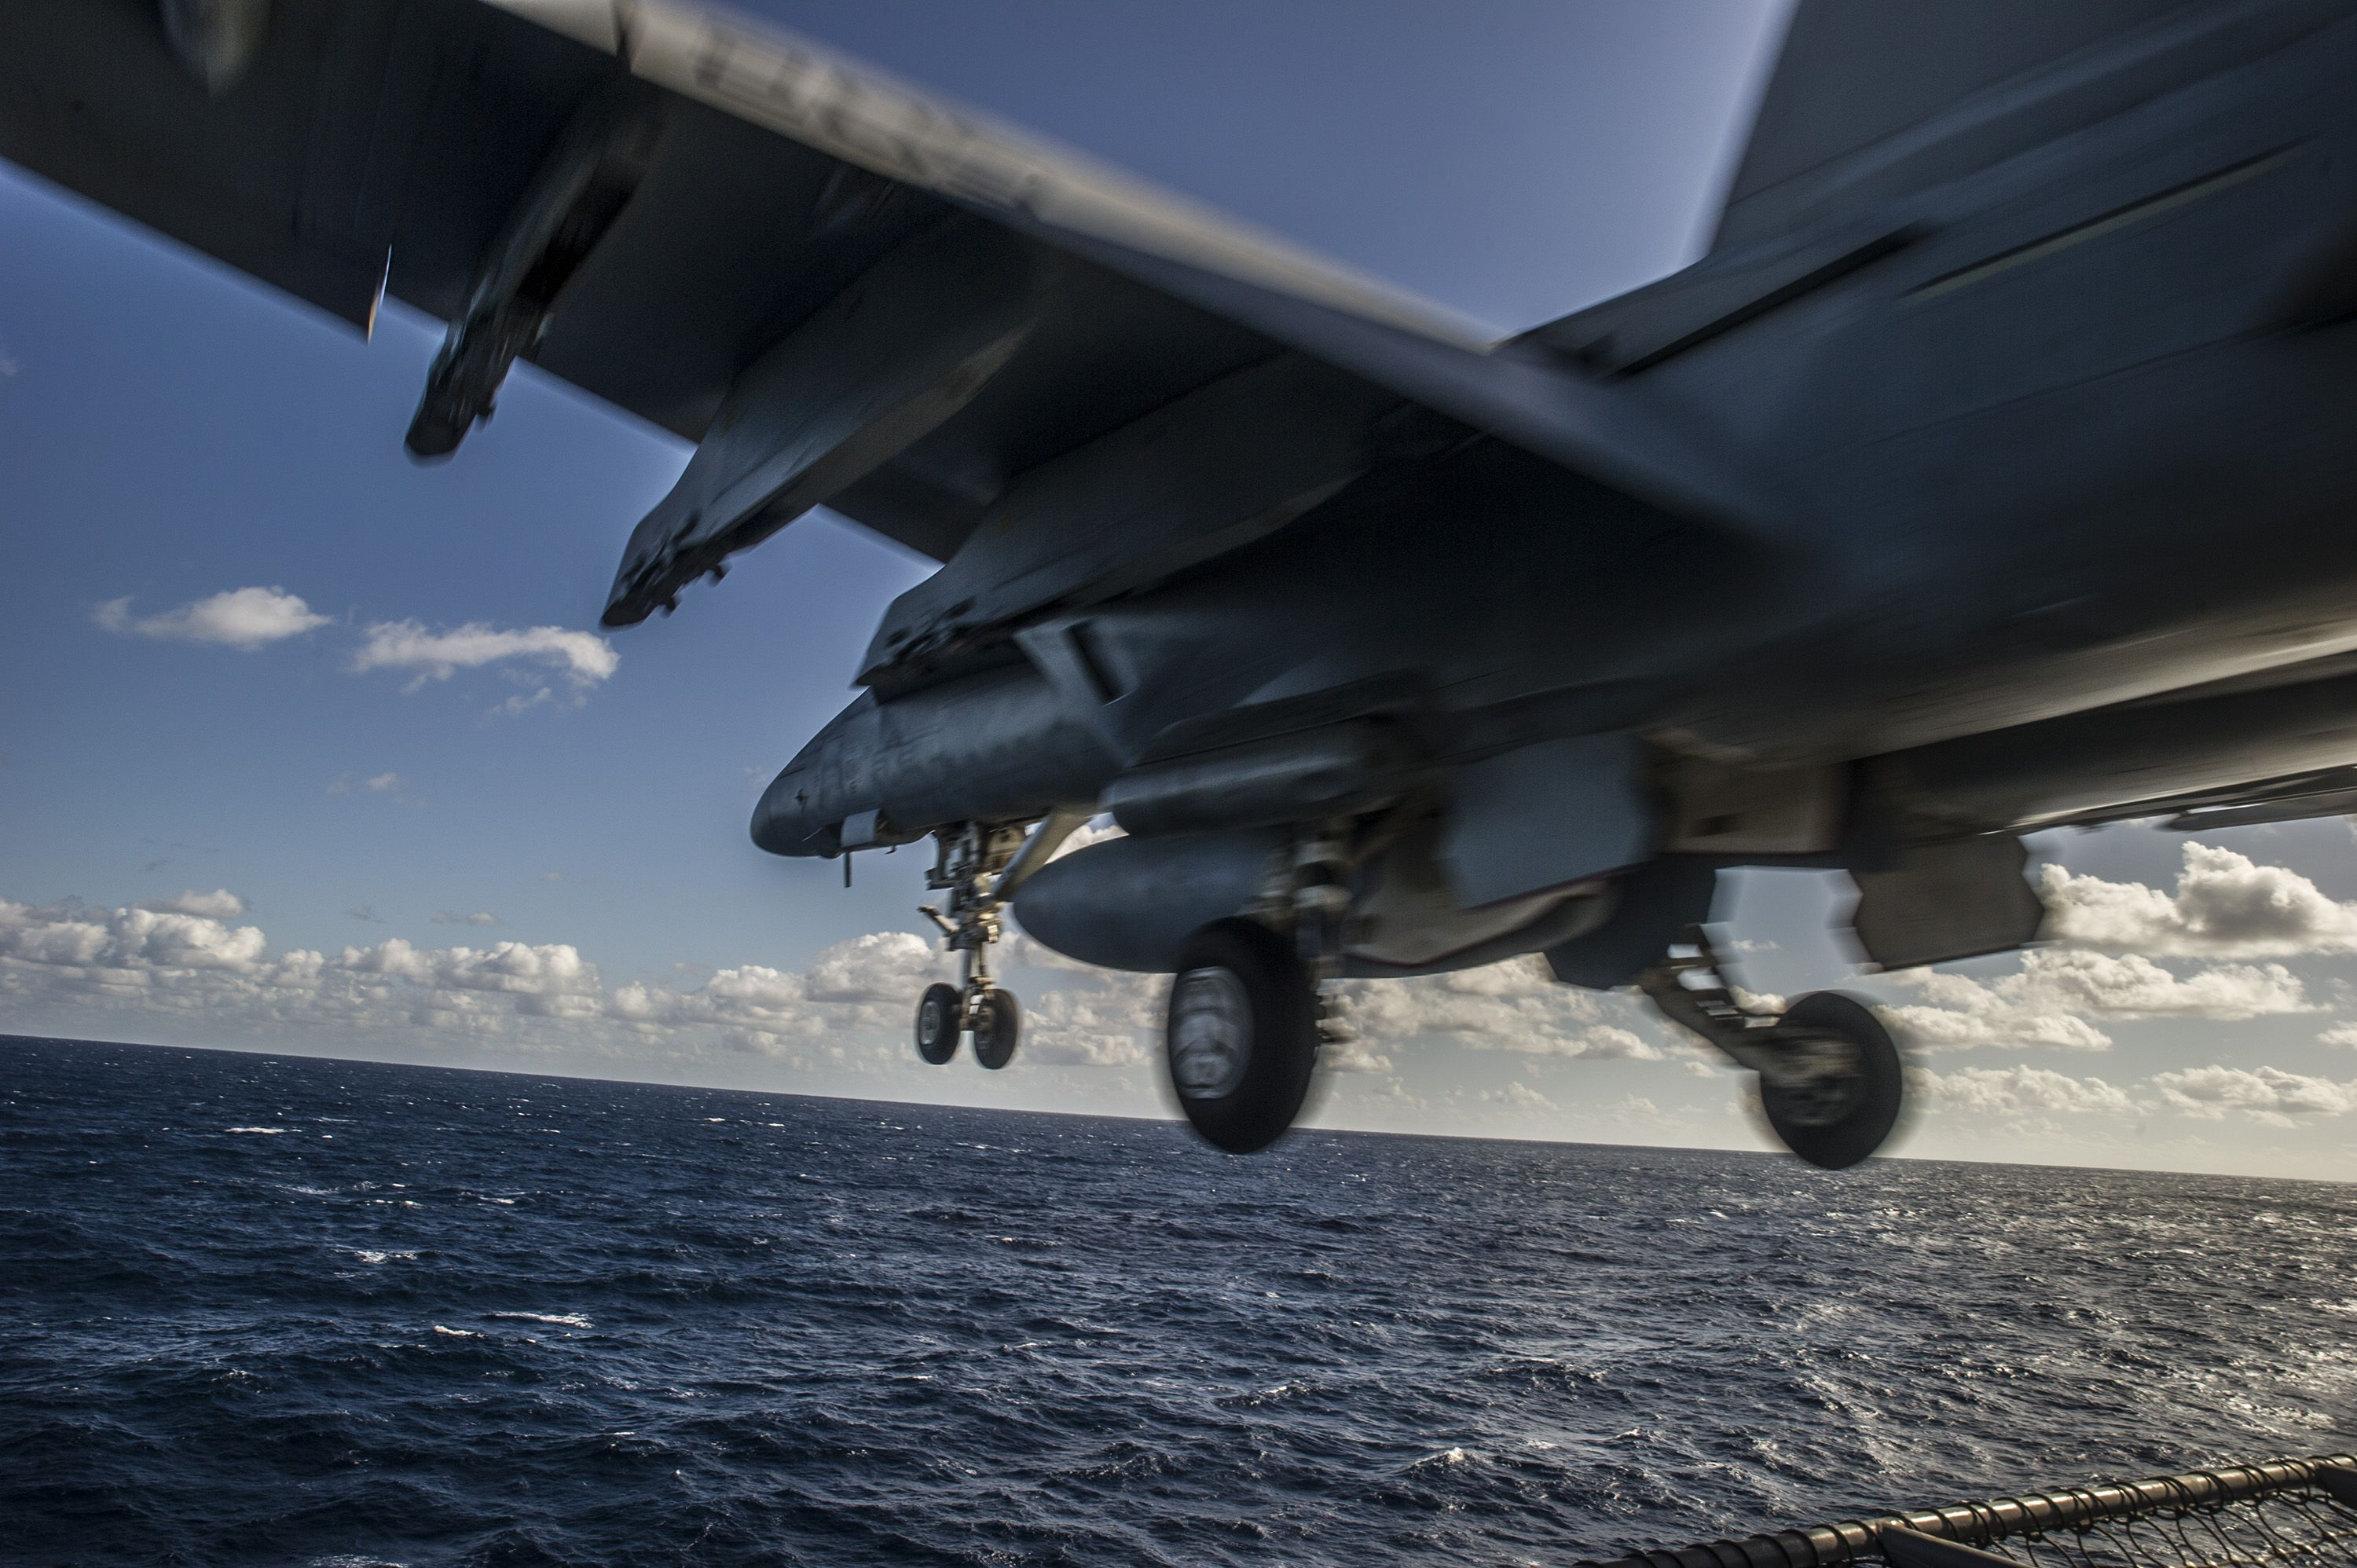 PACIFIC OCEAN,Nov.21,2014.F/A-18E Super Hornet from Royal Maces of Strike Fighter Squadron (VFA) 27 launches from the flight deck of the Nimitz-class aircraft carrier USS George Washington (CVN 73) during the Carrier Air Wing (CVW) 5 fly-off. George Washington and its embarked air wing, CVW 5, provide a combat-ready force that protects and defends the collective maritime interests of the U.S. and its allies and partners in the Indo-Asia-Pacific region.(USN Mass Comm Spec 3rd Class Paolo…